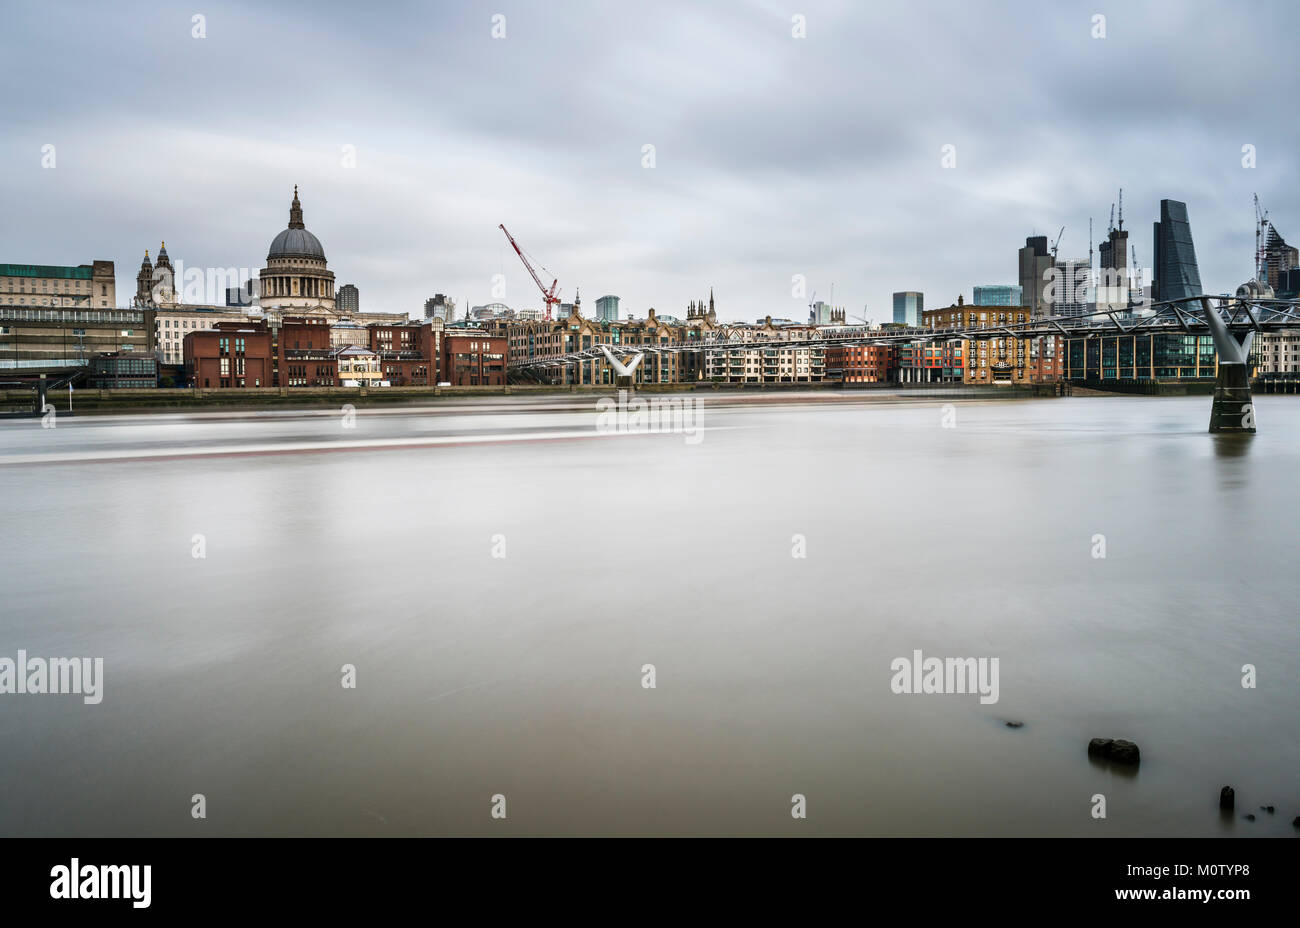 St Paul's Cathedral and the Millennium Bridge, London, UK - Stock Image